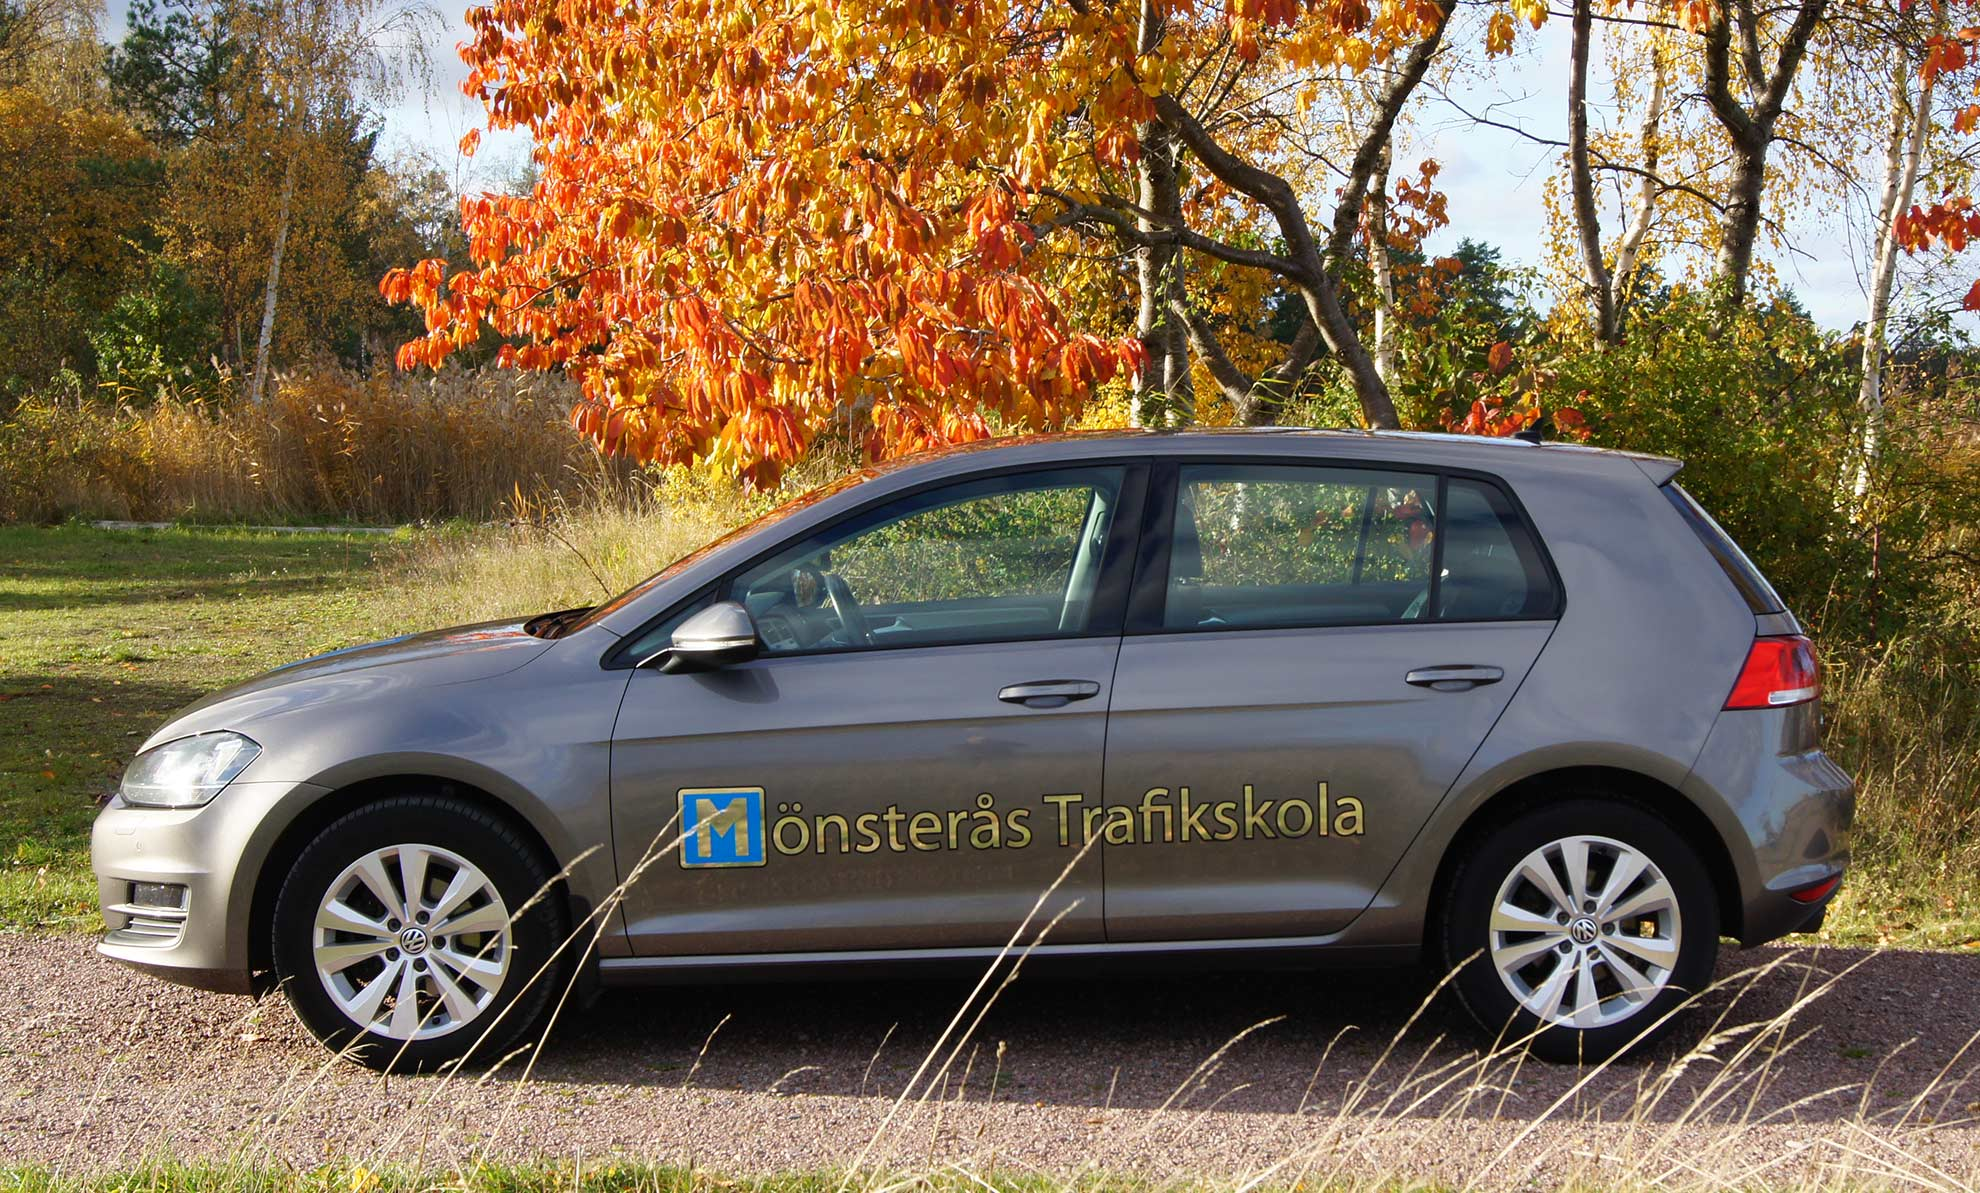 varafordon_monsterastrafikskola.